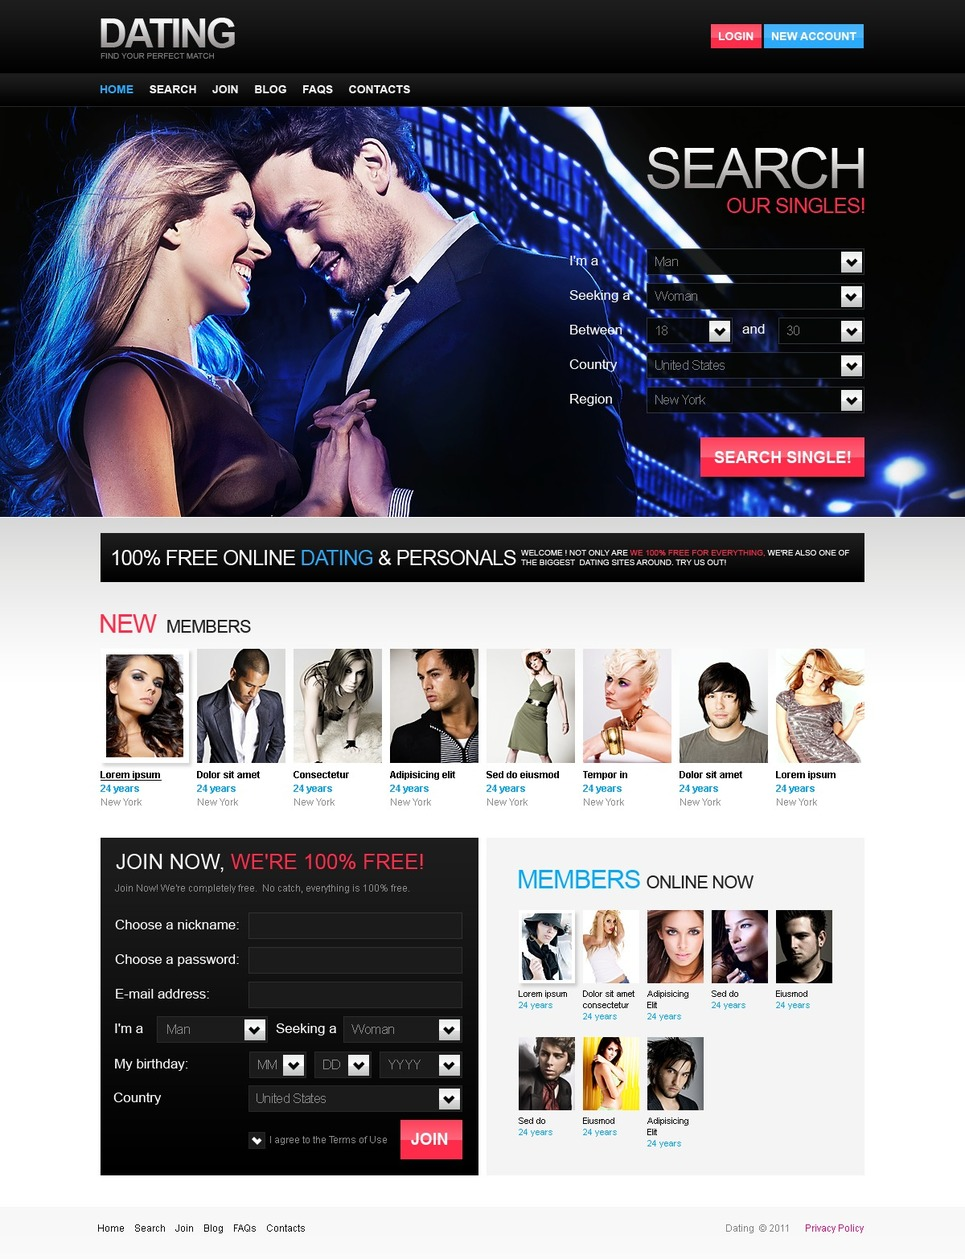 dating web templates free download Dating websites are a great way for people to meet partners online unless you have developed your own website from scratch, you're going to need to pay someone dating websites templates free download through the nose to get this designed.